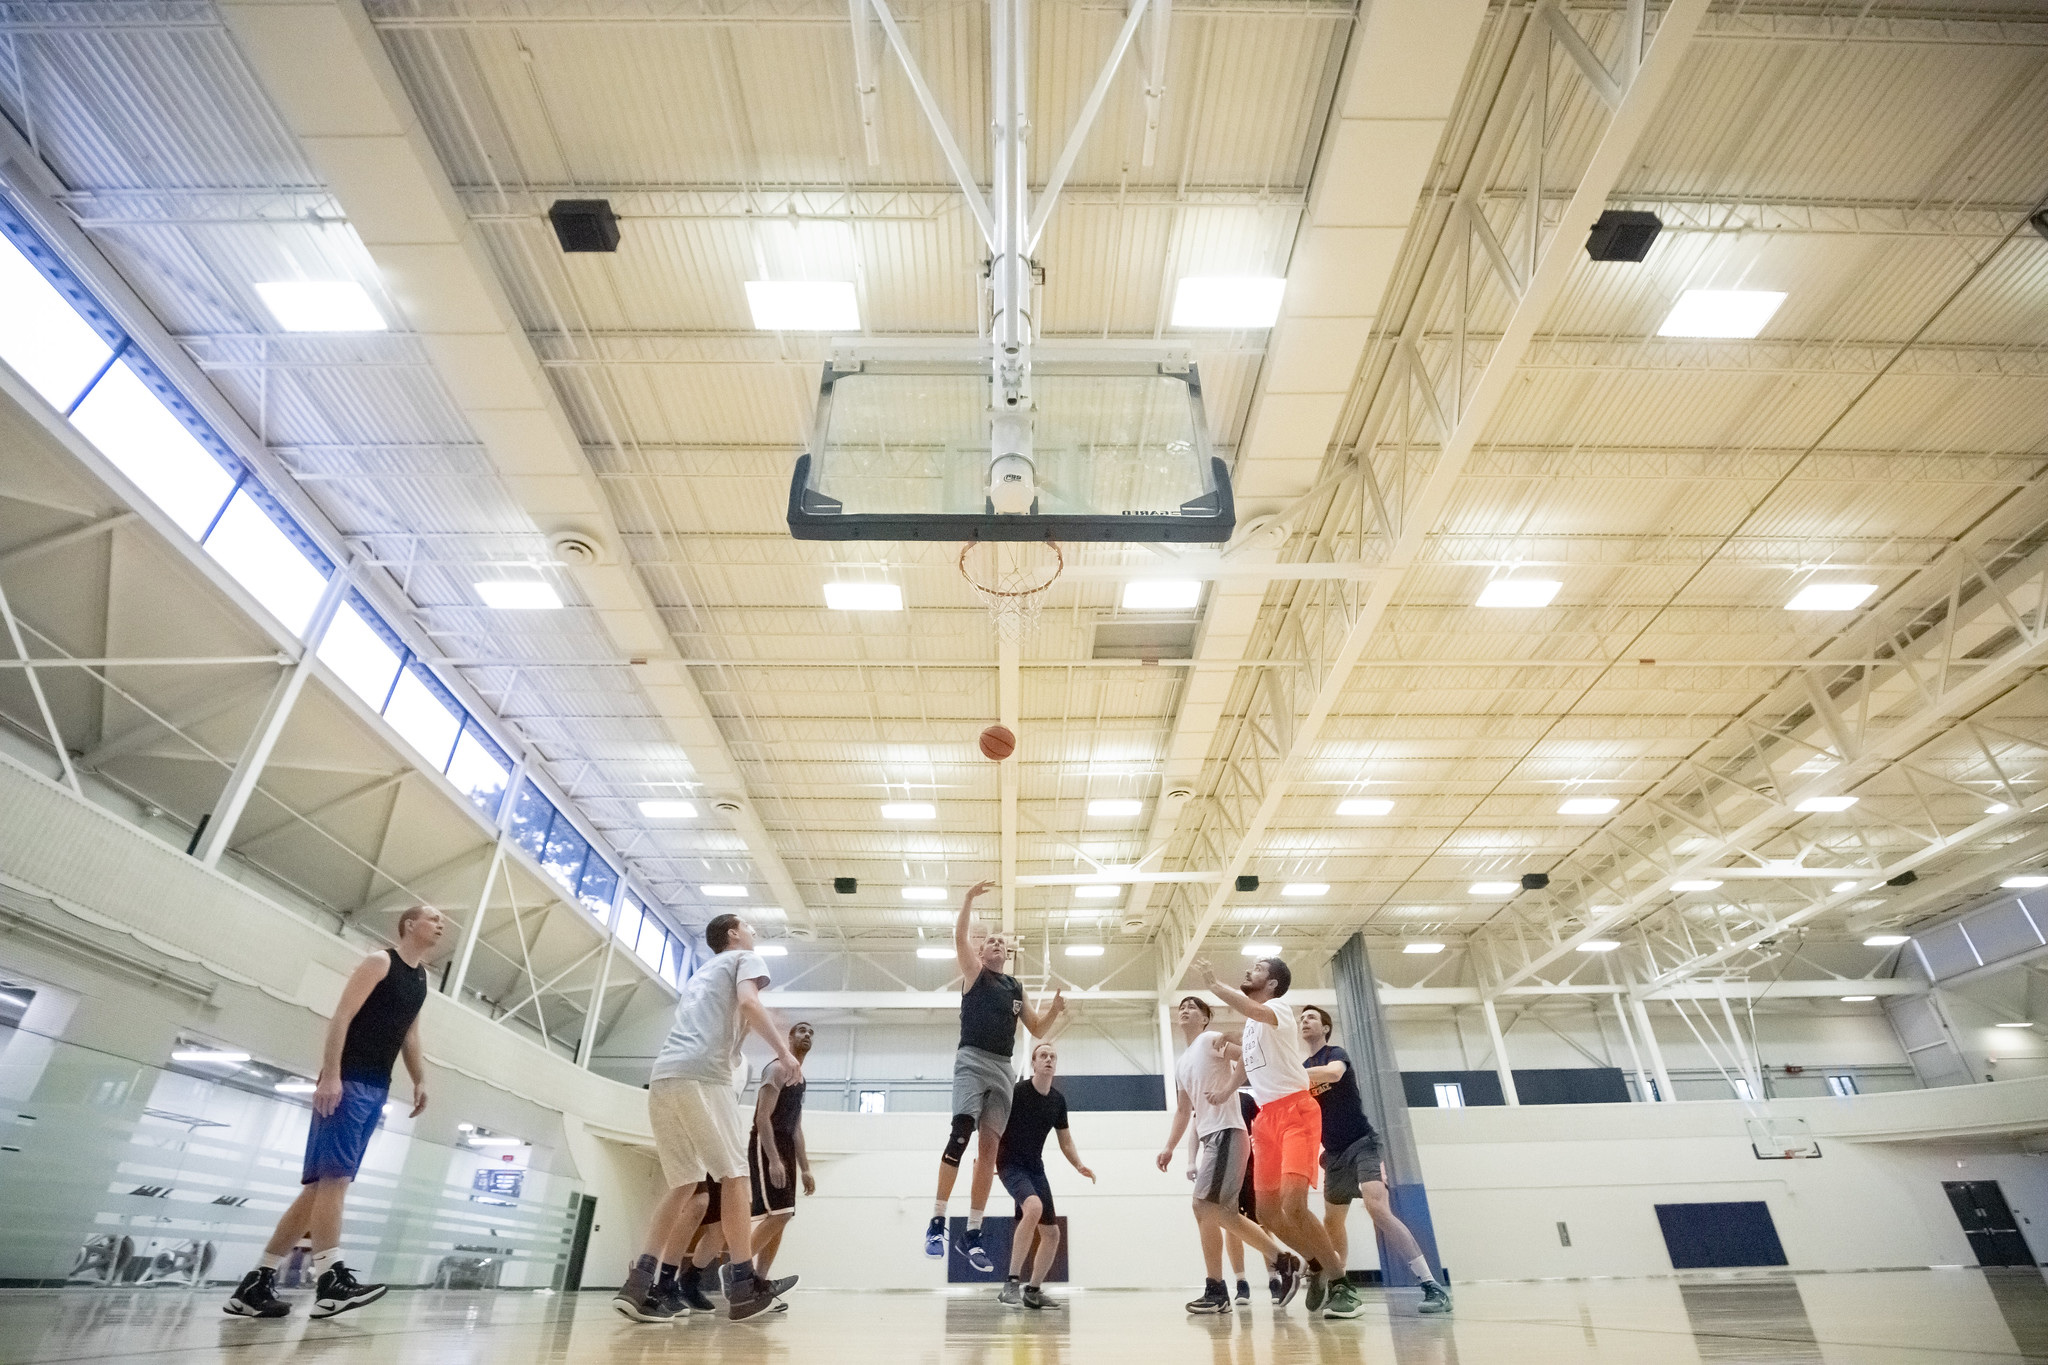 A photograph of biomedical engineering researchers playing basketball.